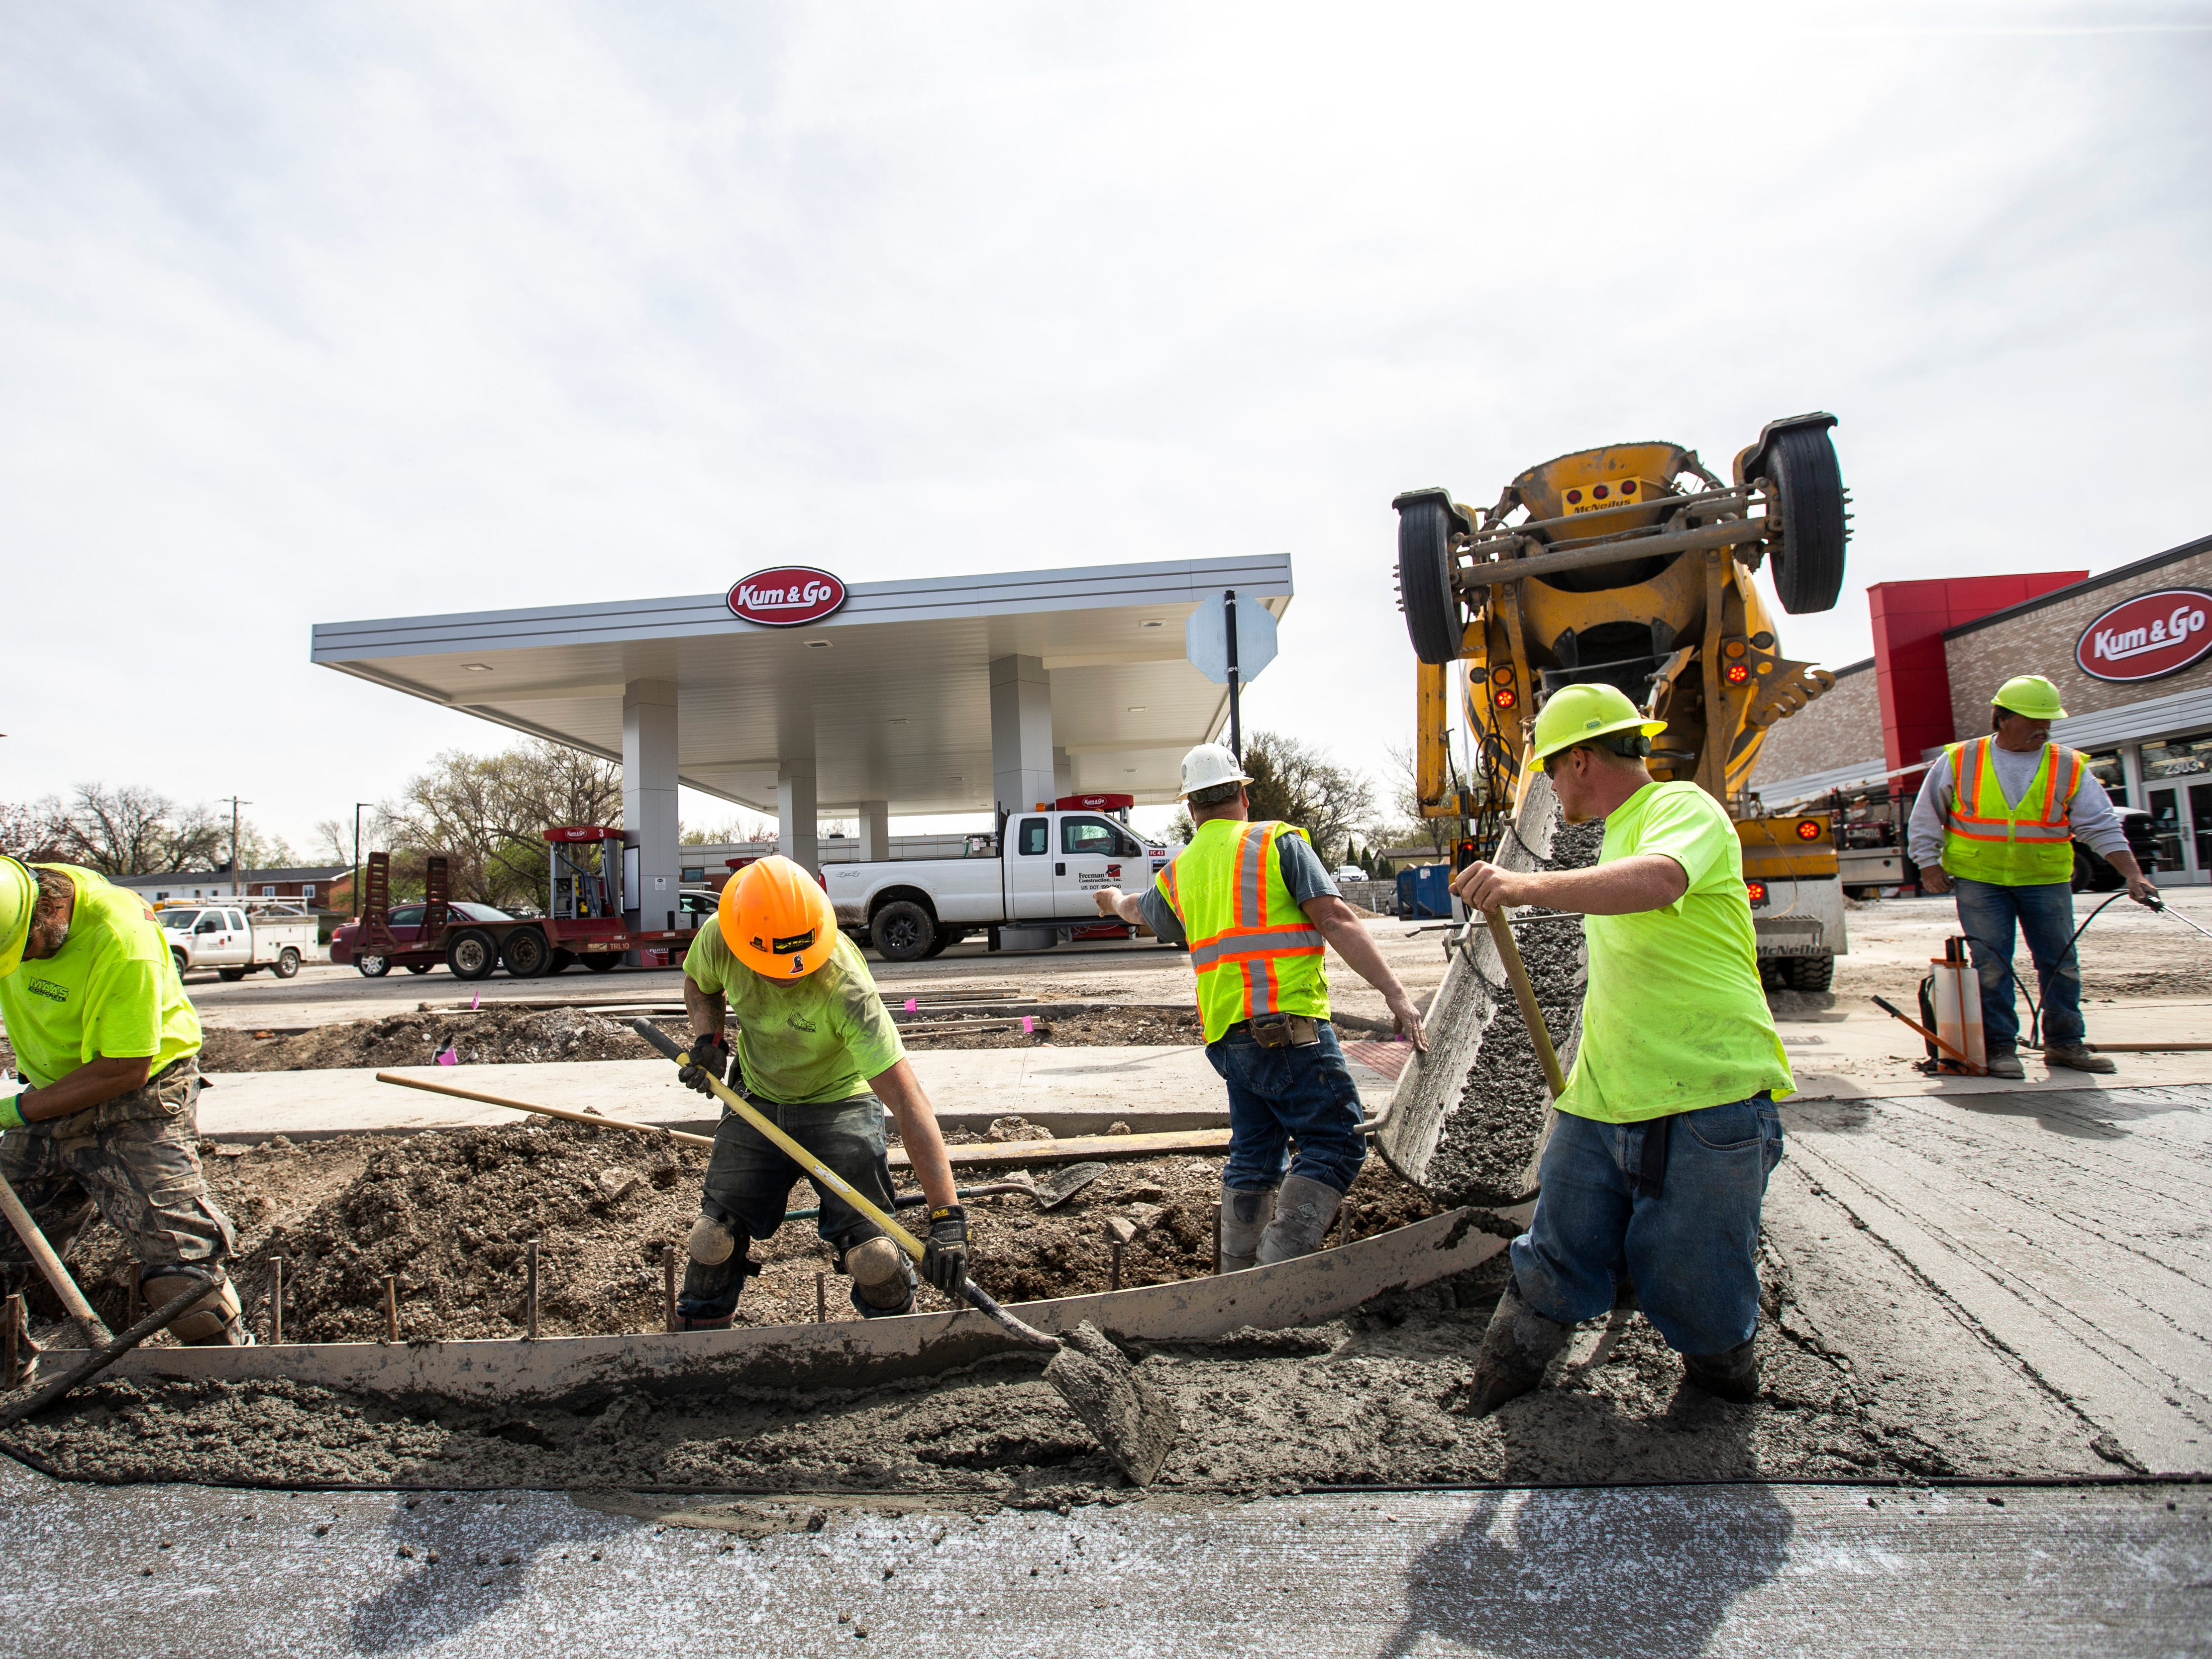 Bud Maas Concrete foreman Steve Conley, center right, gives instructions while concrete gets poured for an entrance off of Muscatine Avenue as construction nears competition, Tuesday, April 23, 2019, at a new Kum & Go location on the corner of Muscatine and First Avenues on the east side of Iowa City, Iowa.